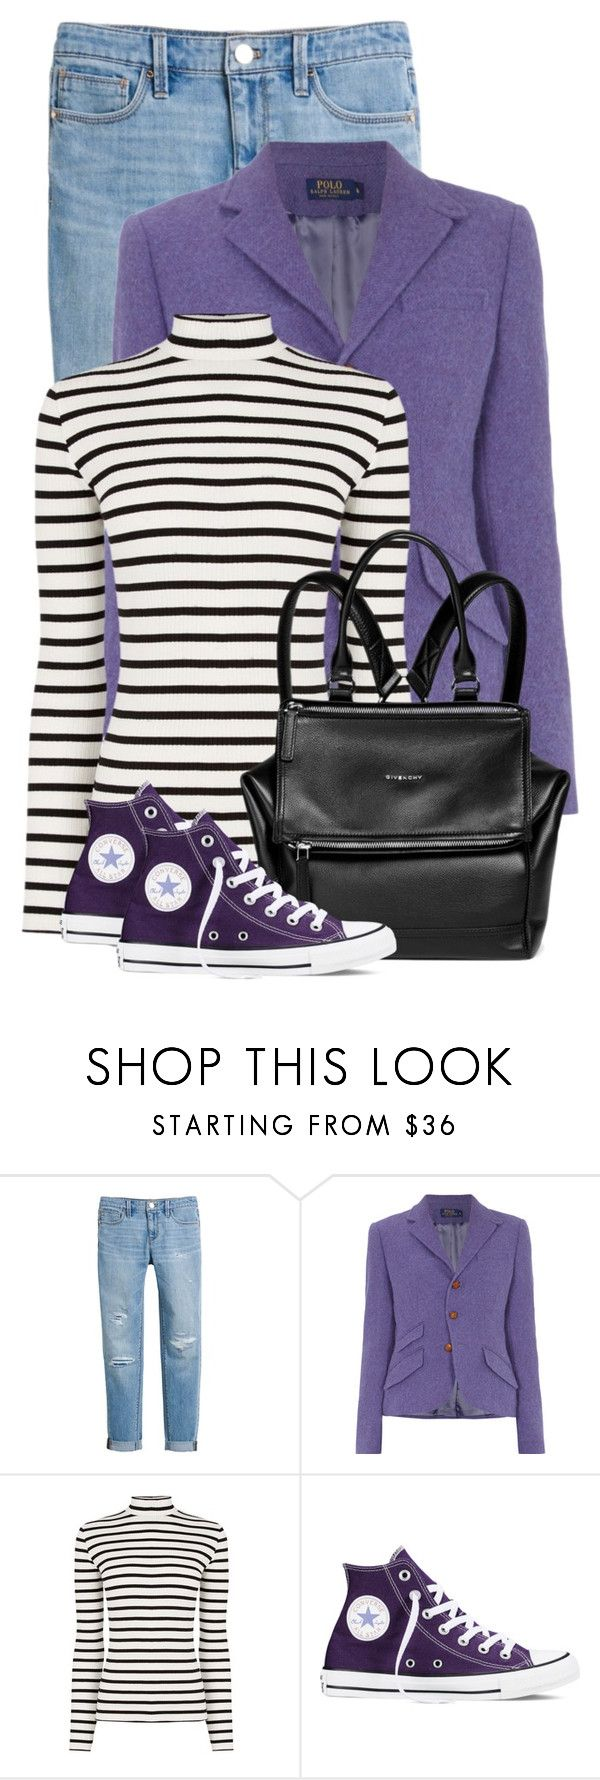 """old days"" by ecem1 ❤ liked on Polyvore featuring White House Black Market, Oasis, Converse and Givenchy"